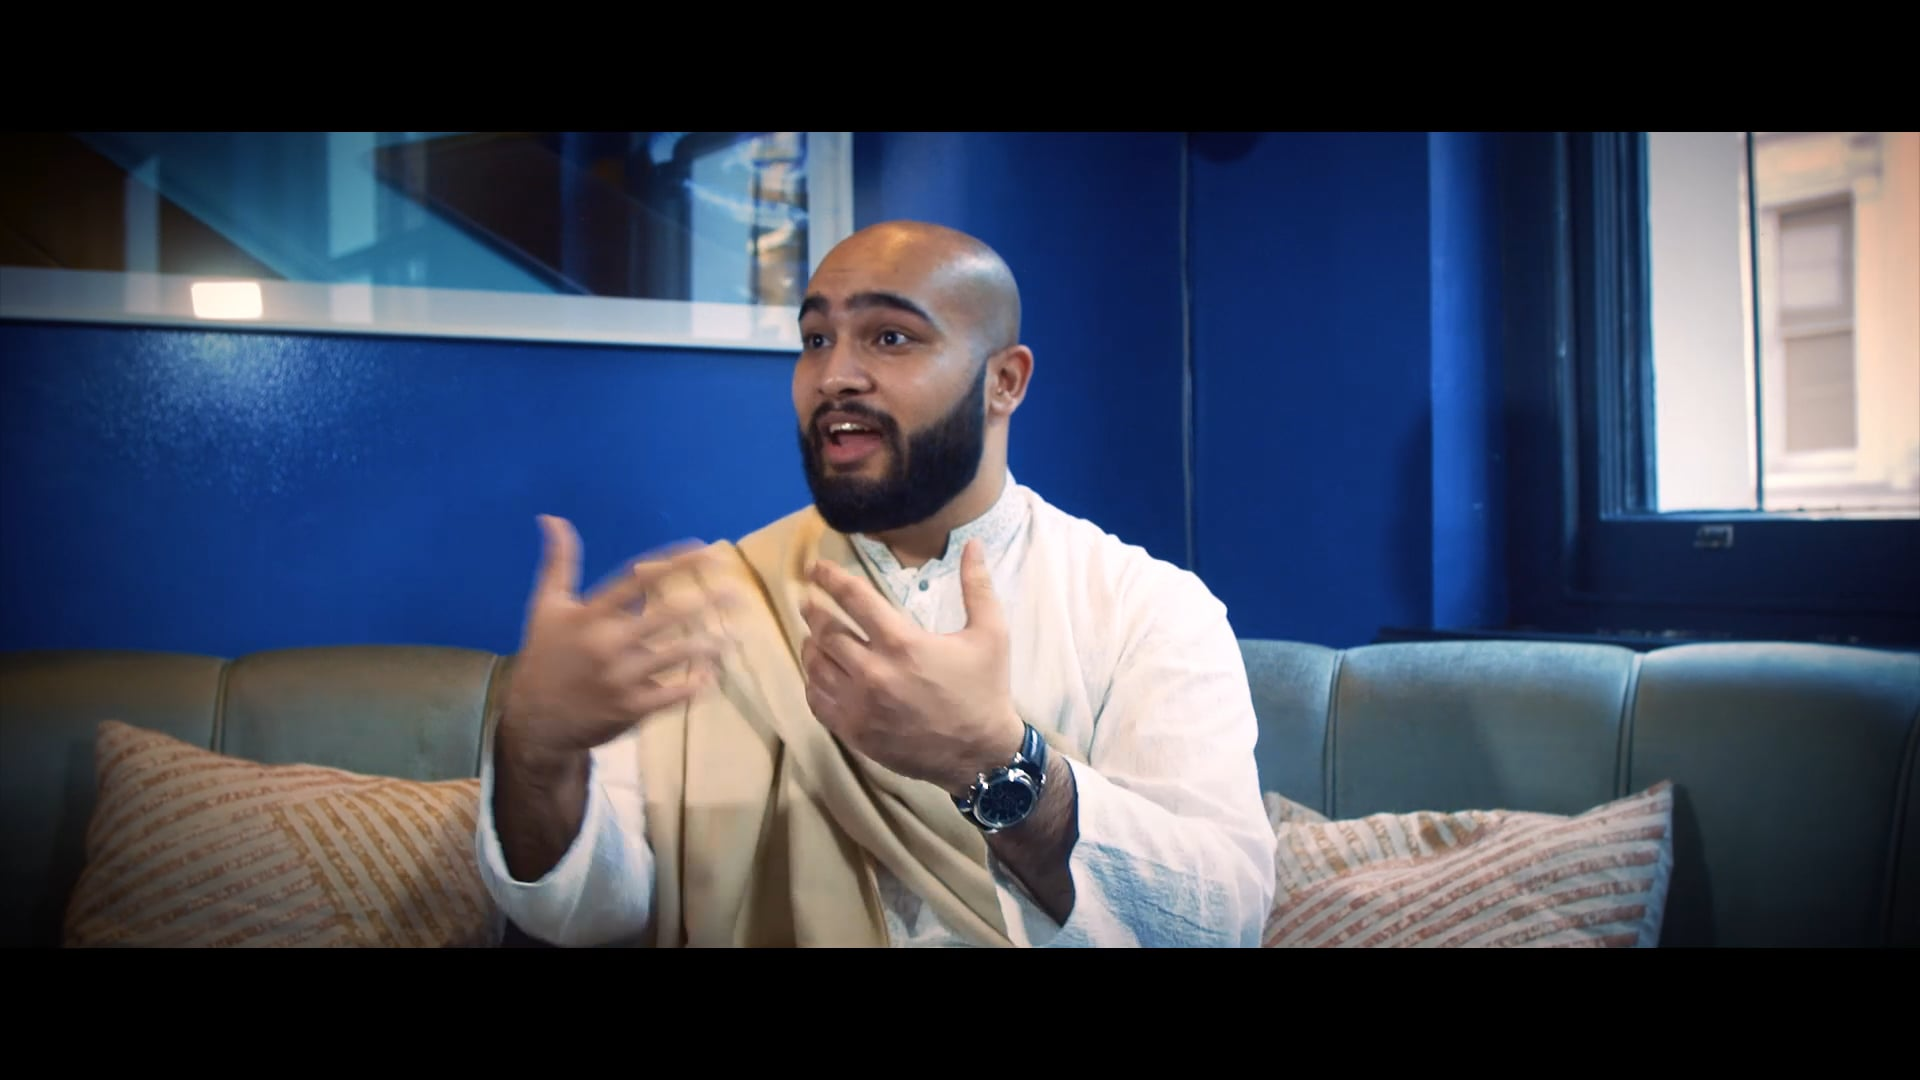 Shayan Ali - Assistant Director